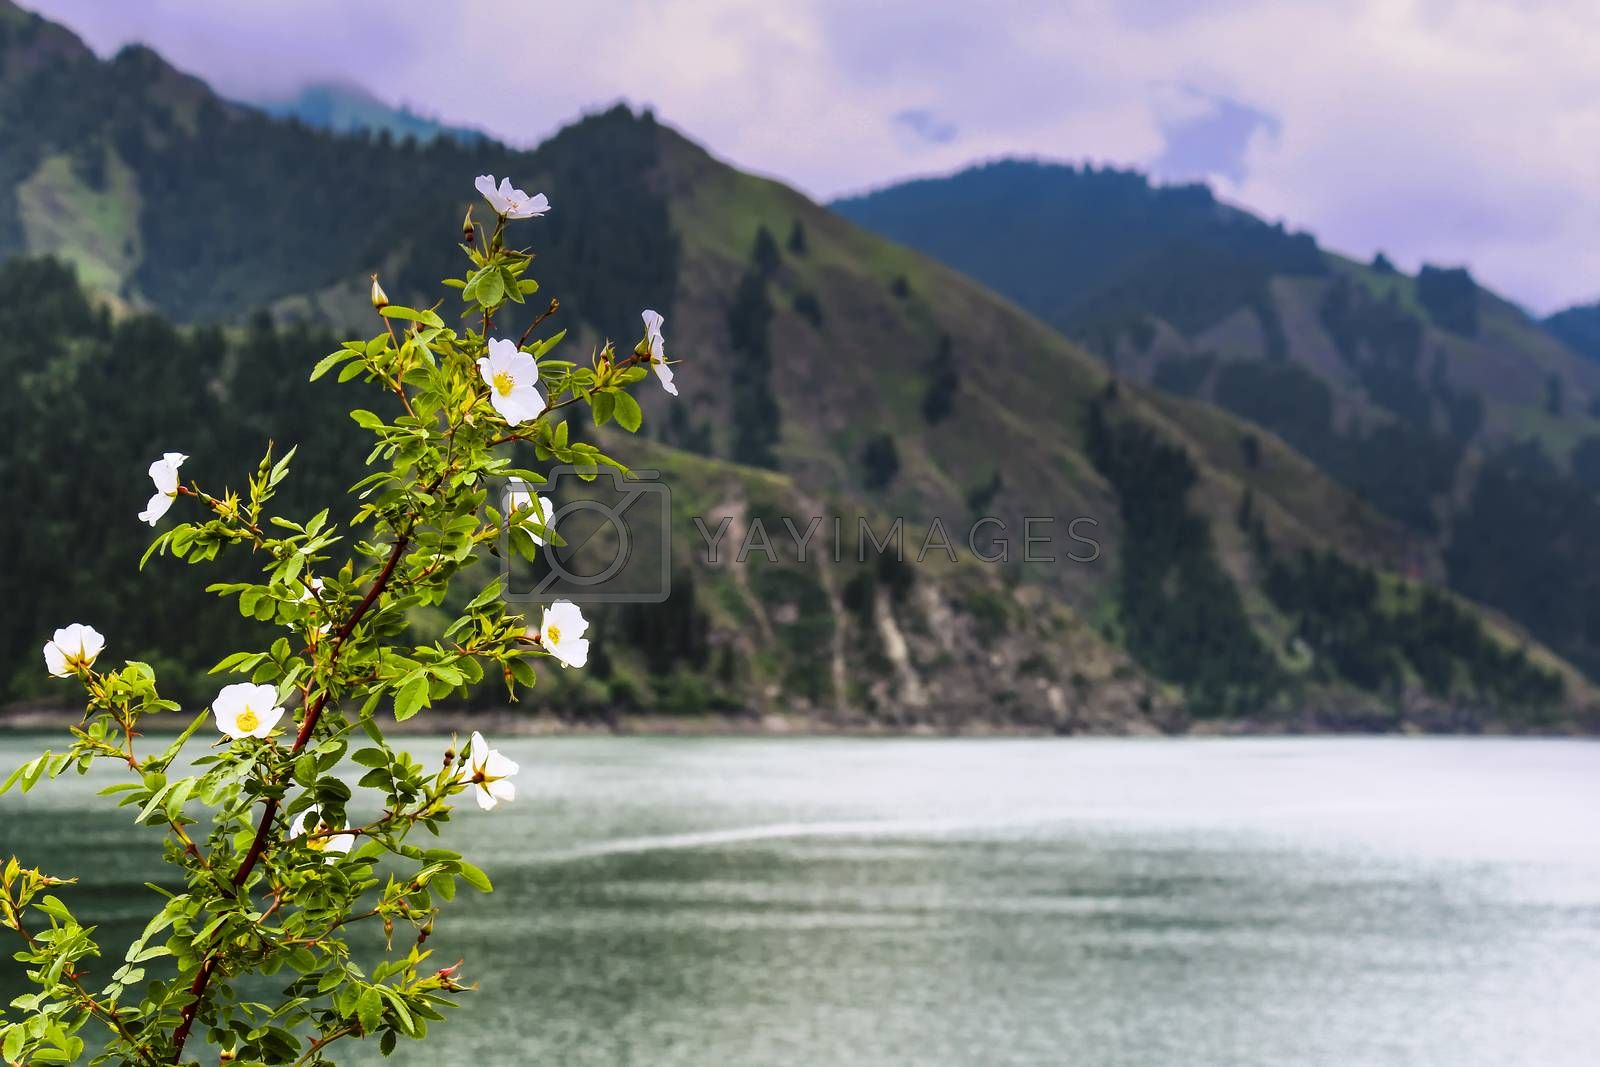 White alpine poppy flowers growing at the banks of Tianchi Lake in Xinjiang, China